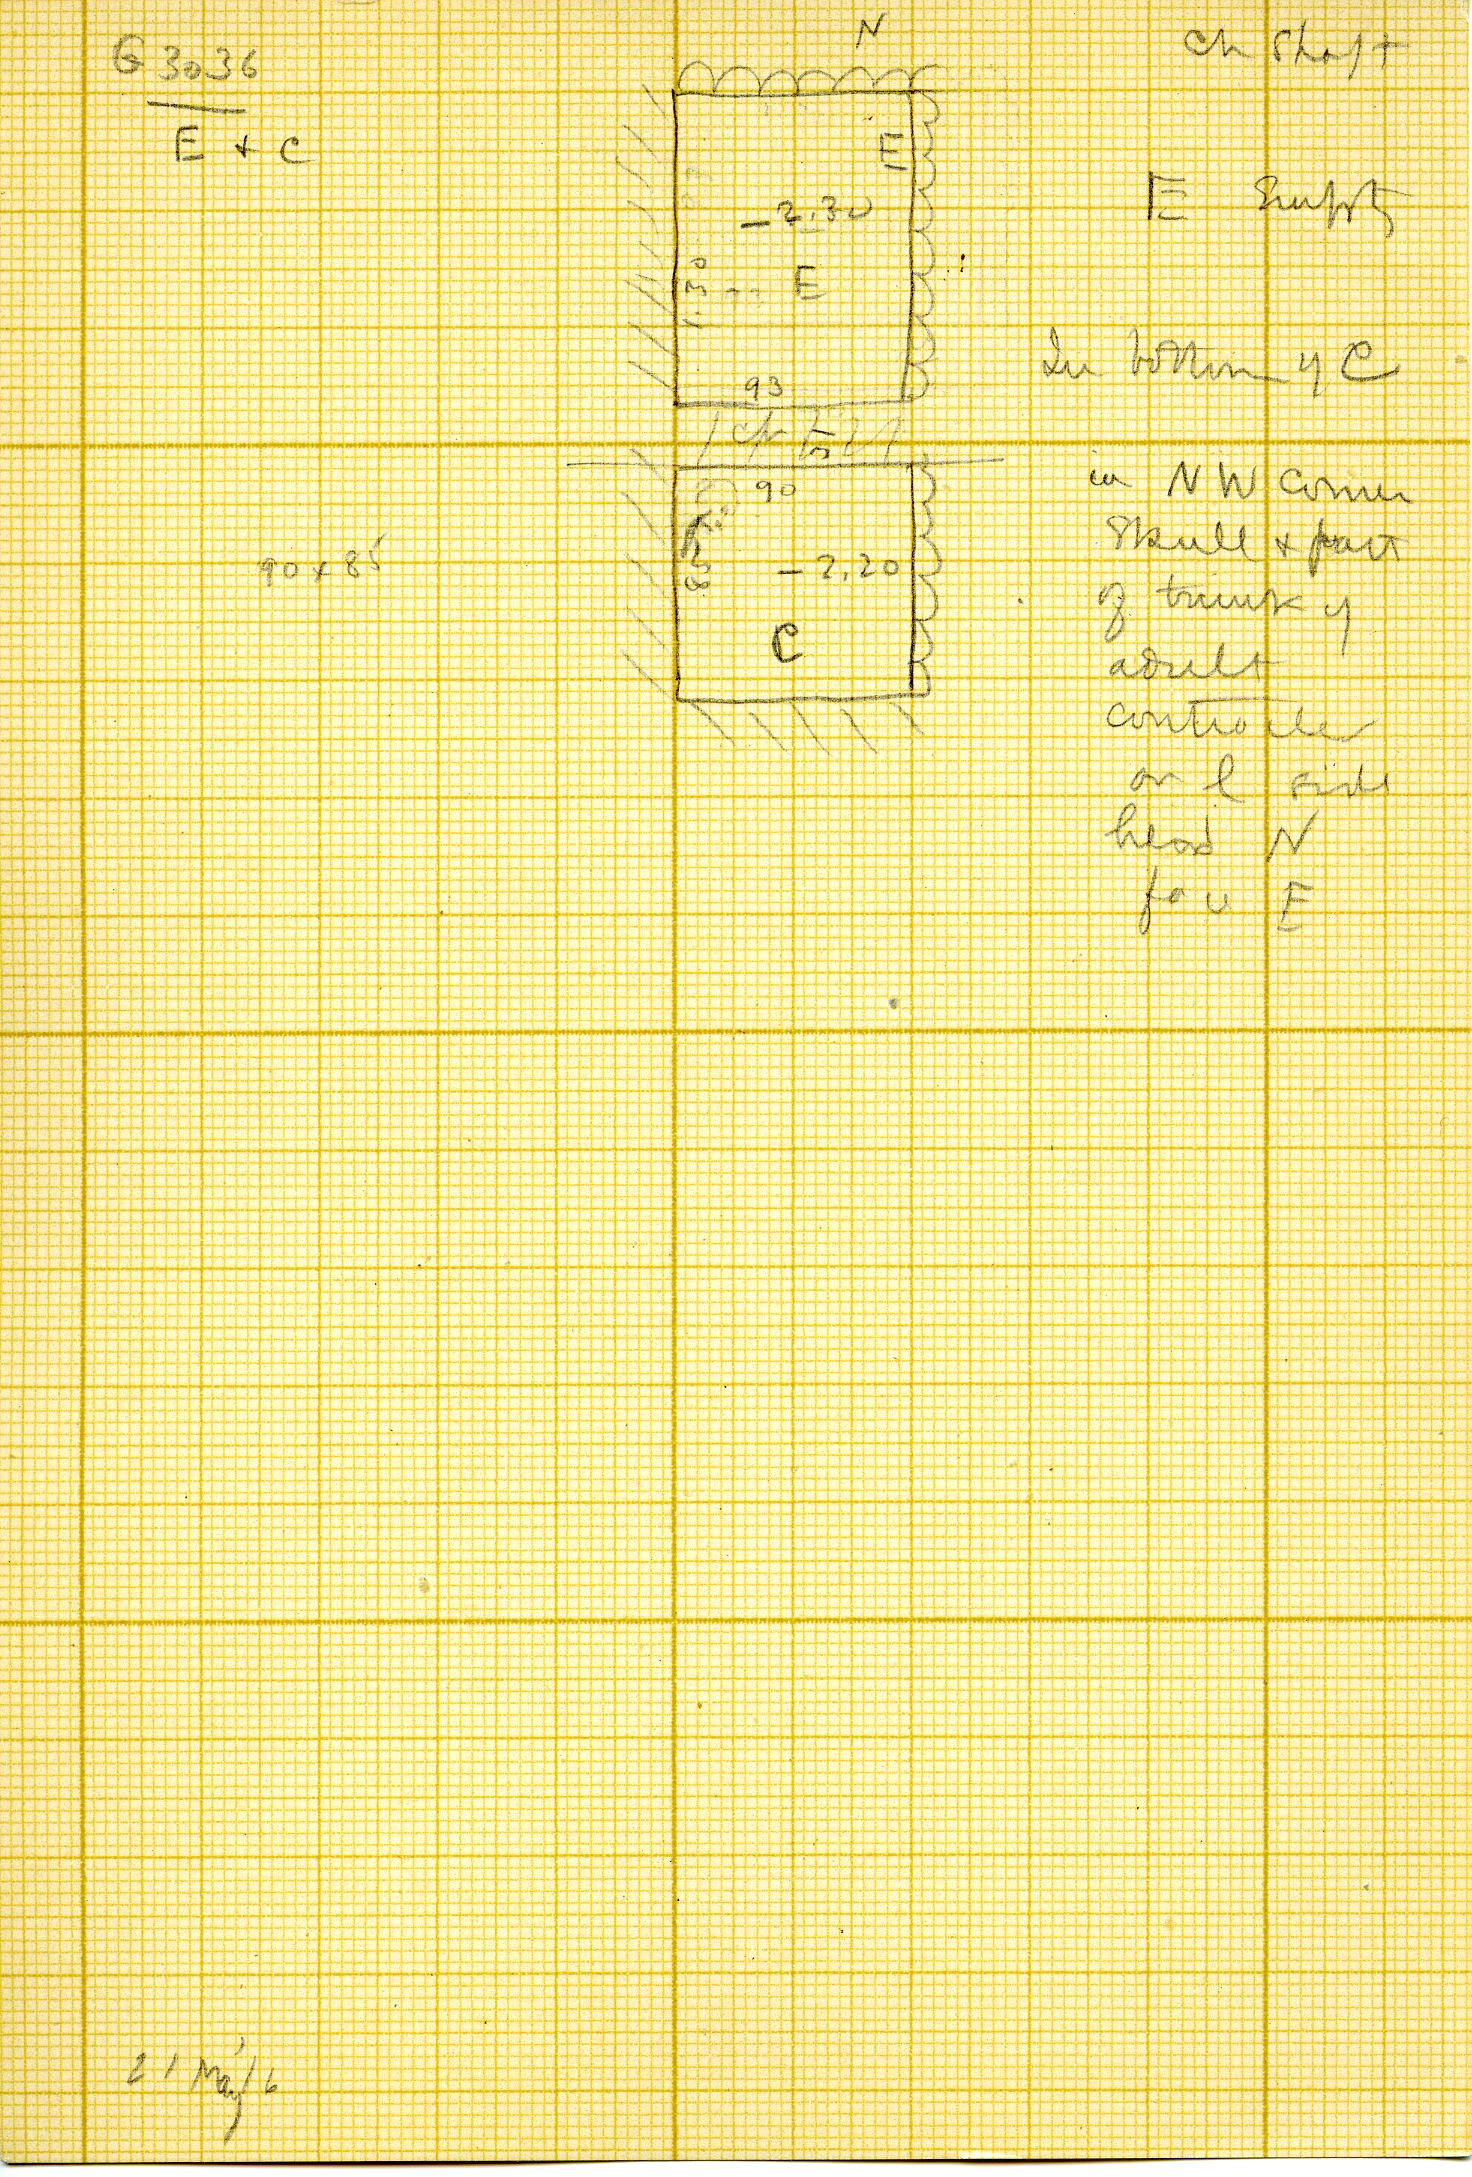 Maps and plans: G 3036, Shafts C, E